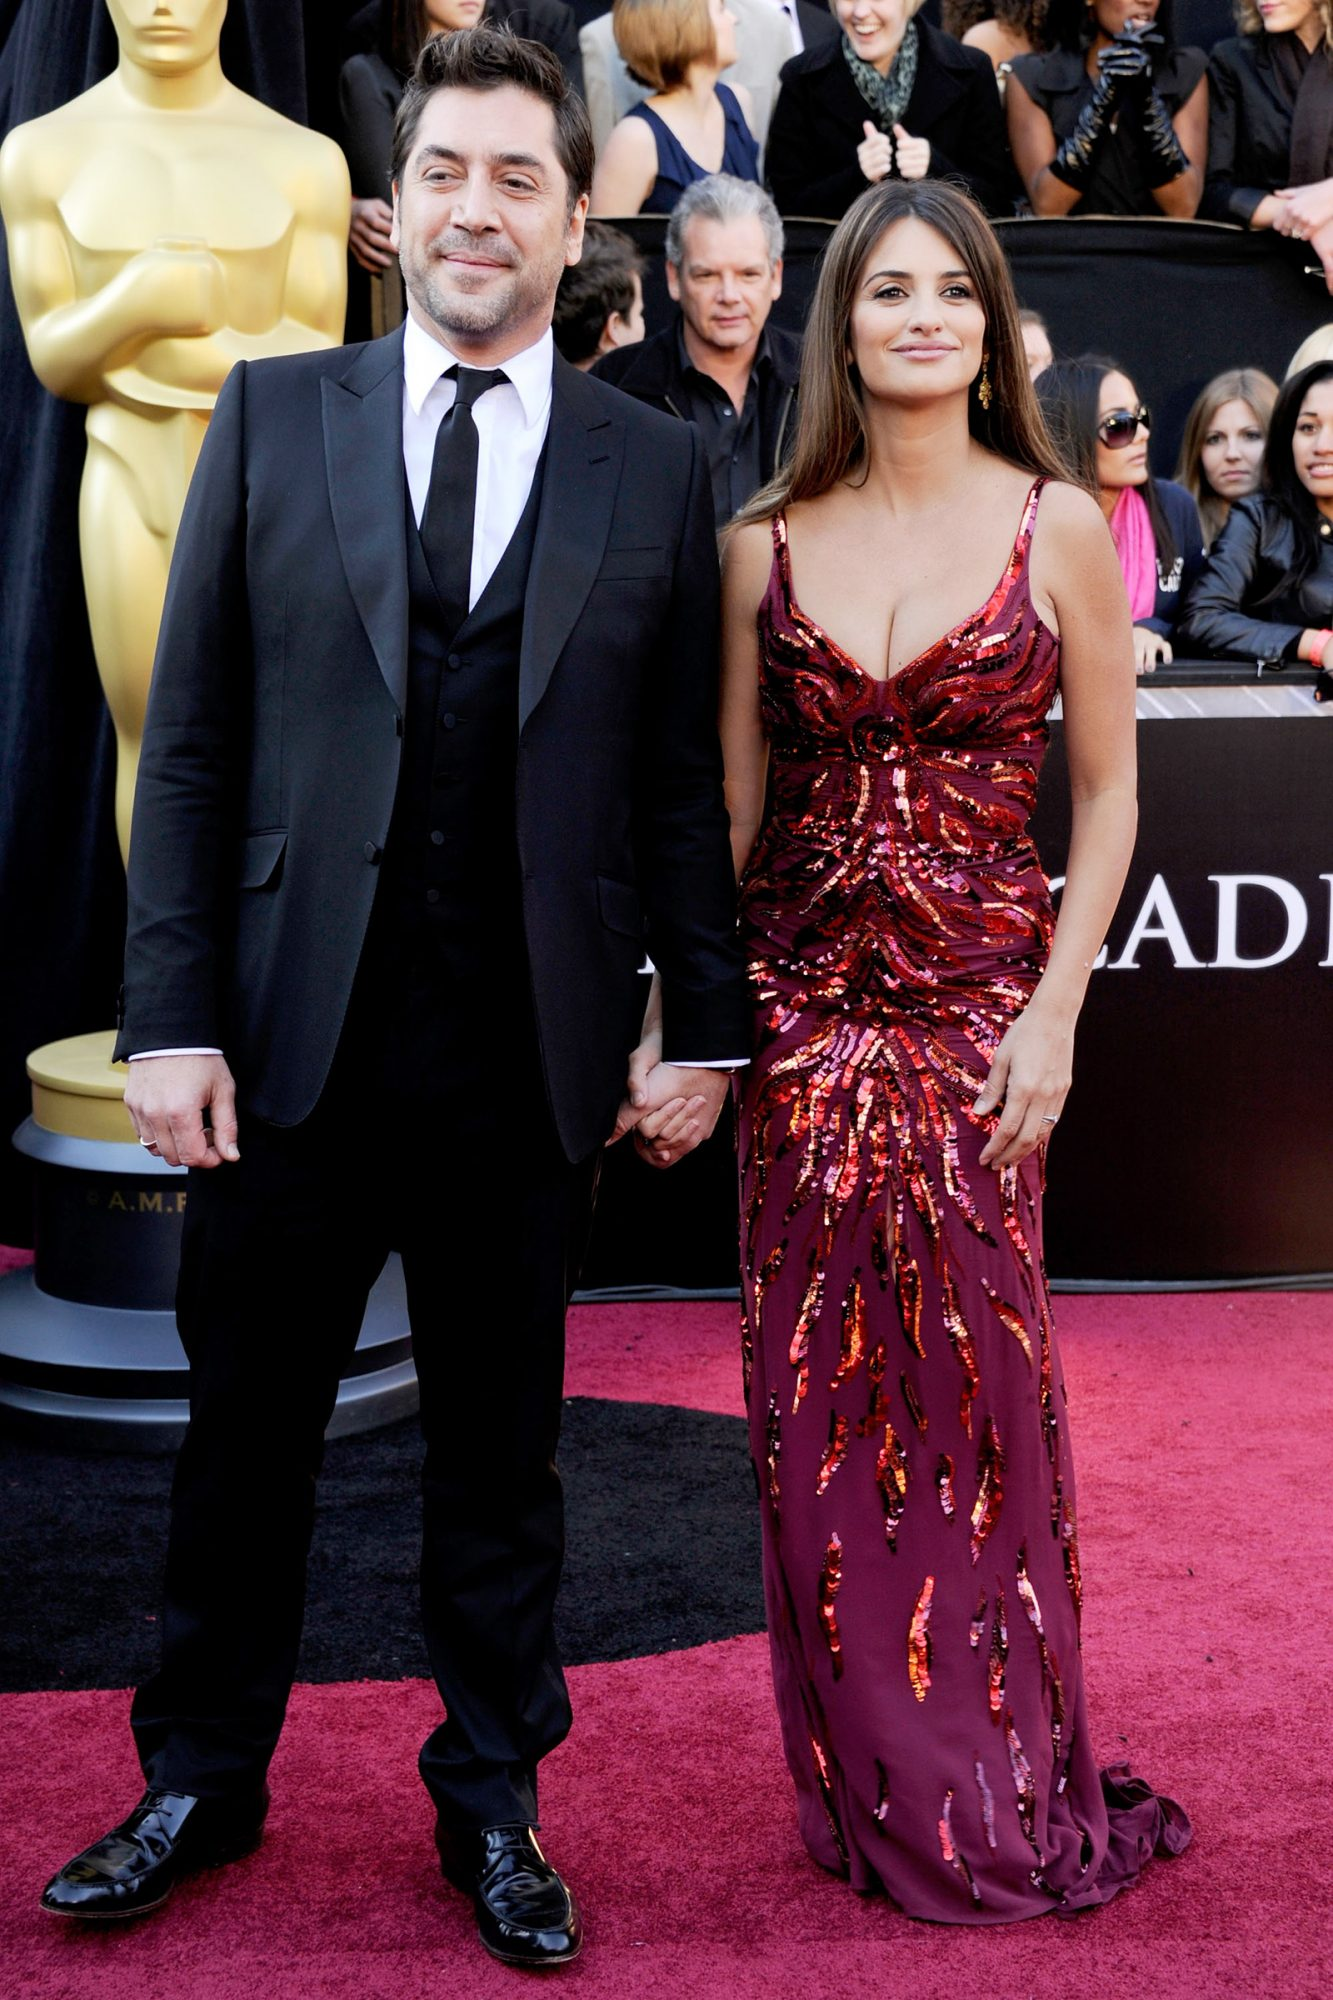 2011 Academy Awards, Javier Bardem and Penelope Cruz